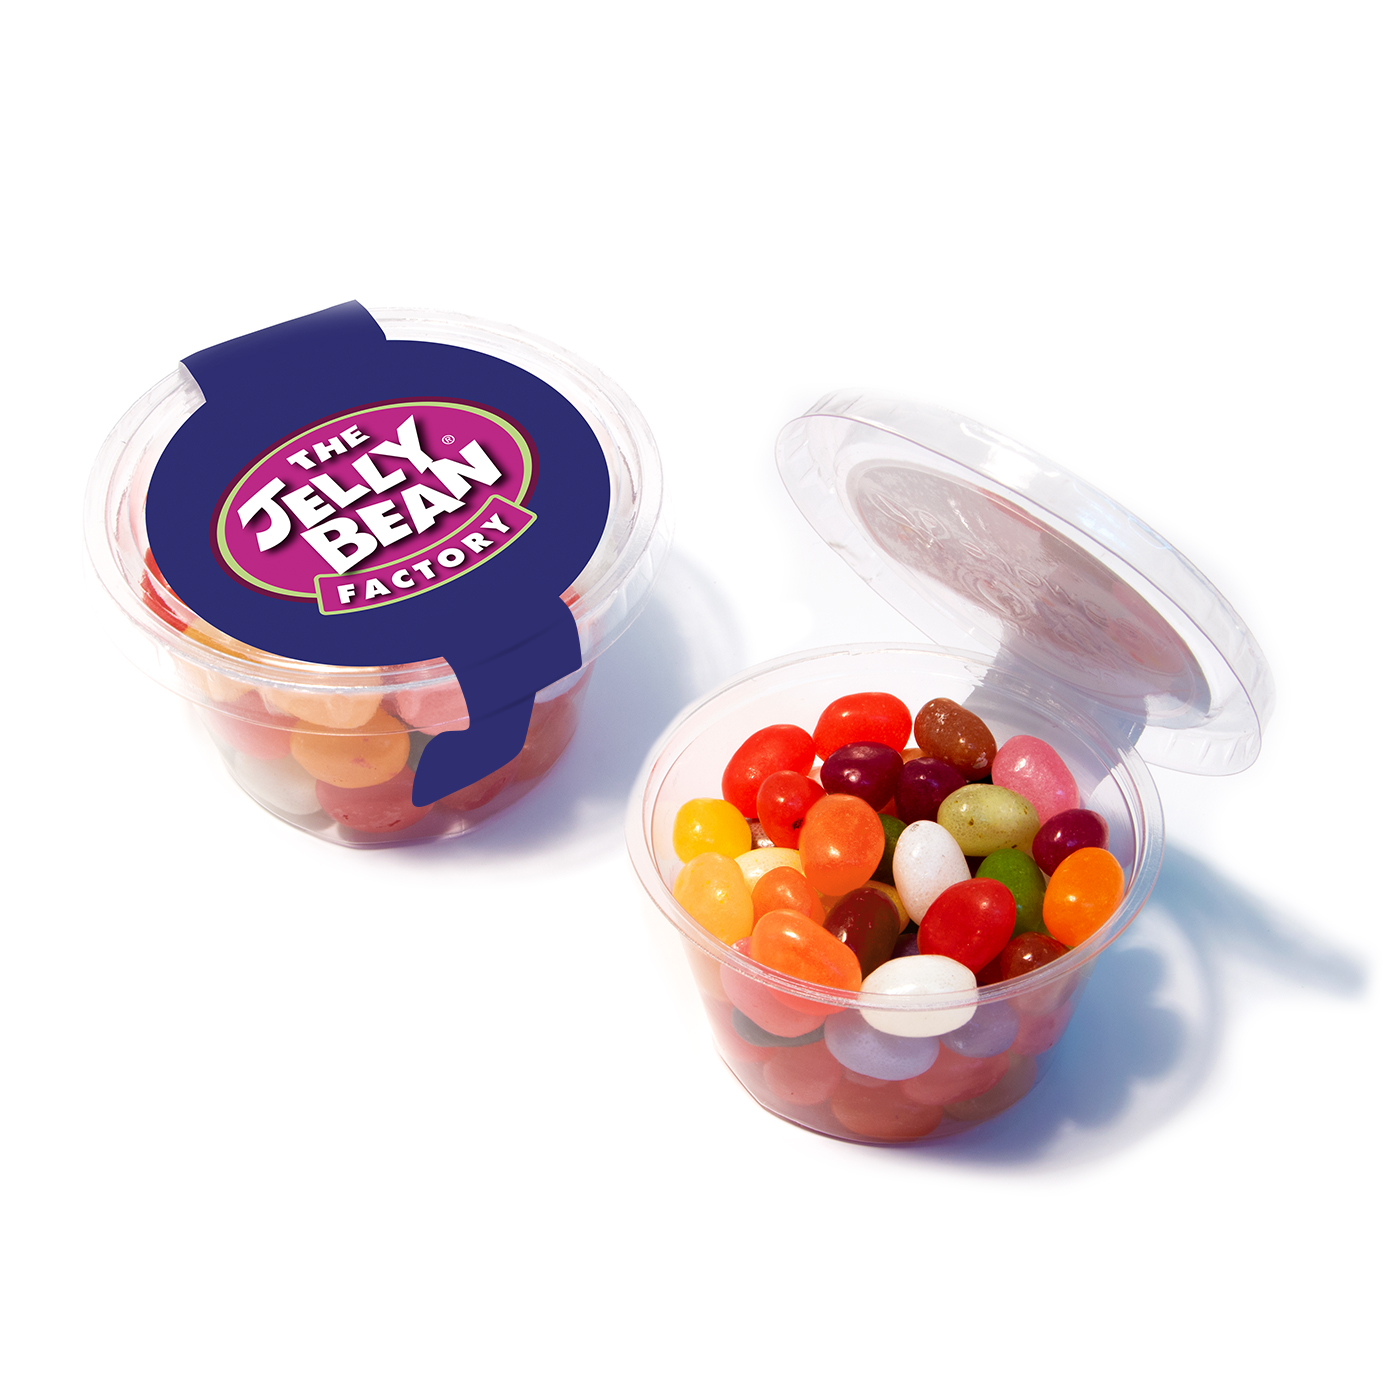 ECO POT MAXI JELLY BEAN FACTORY BEANS